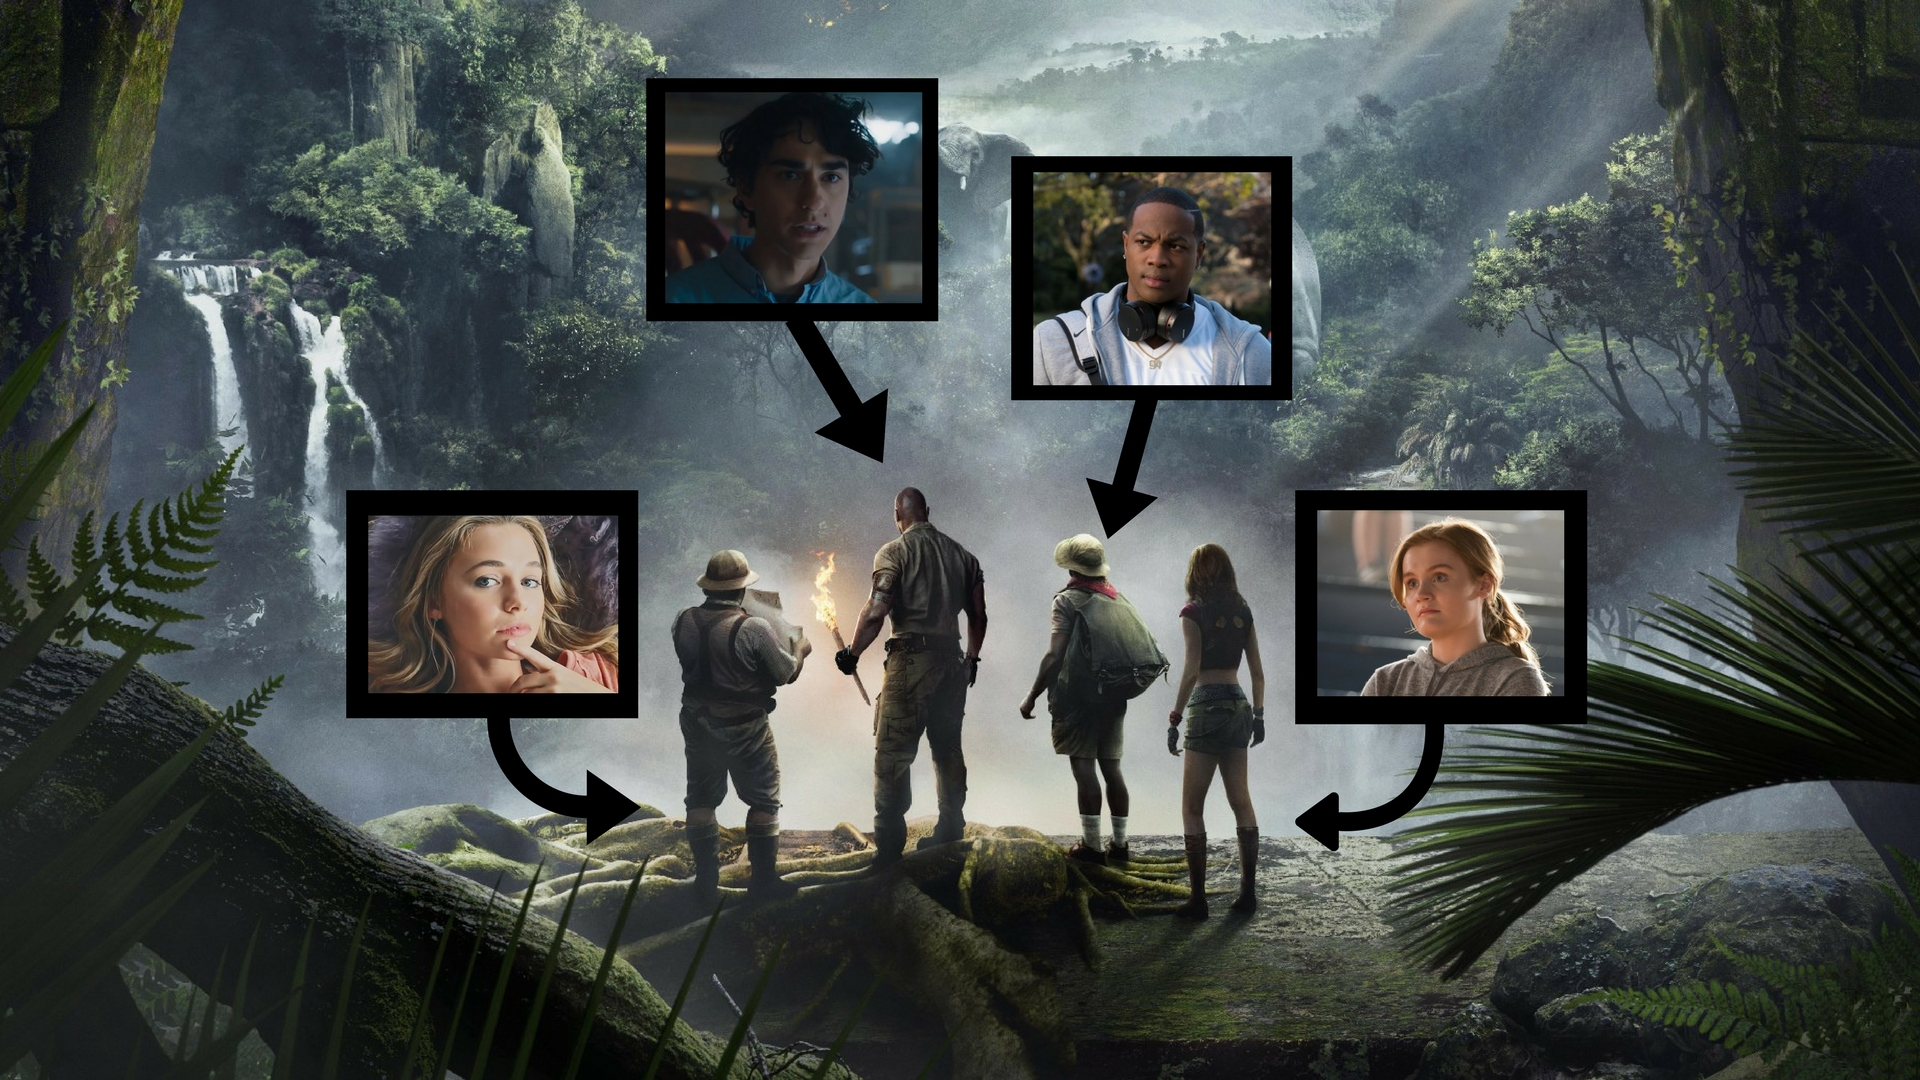 Jumanji Welcome to the Jungle characters and avatars